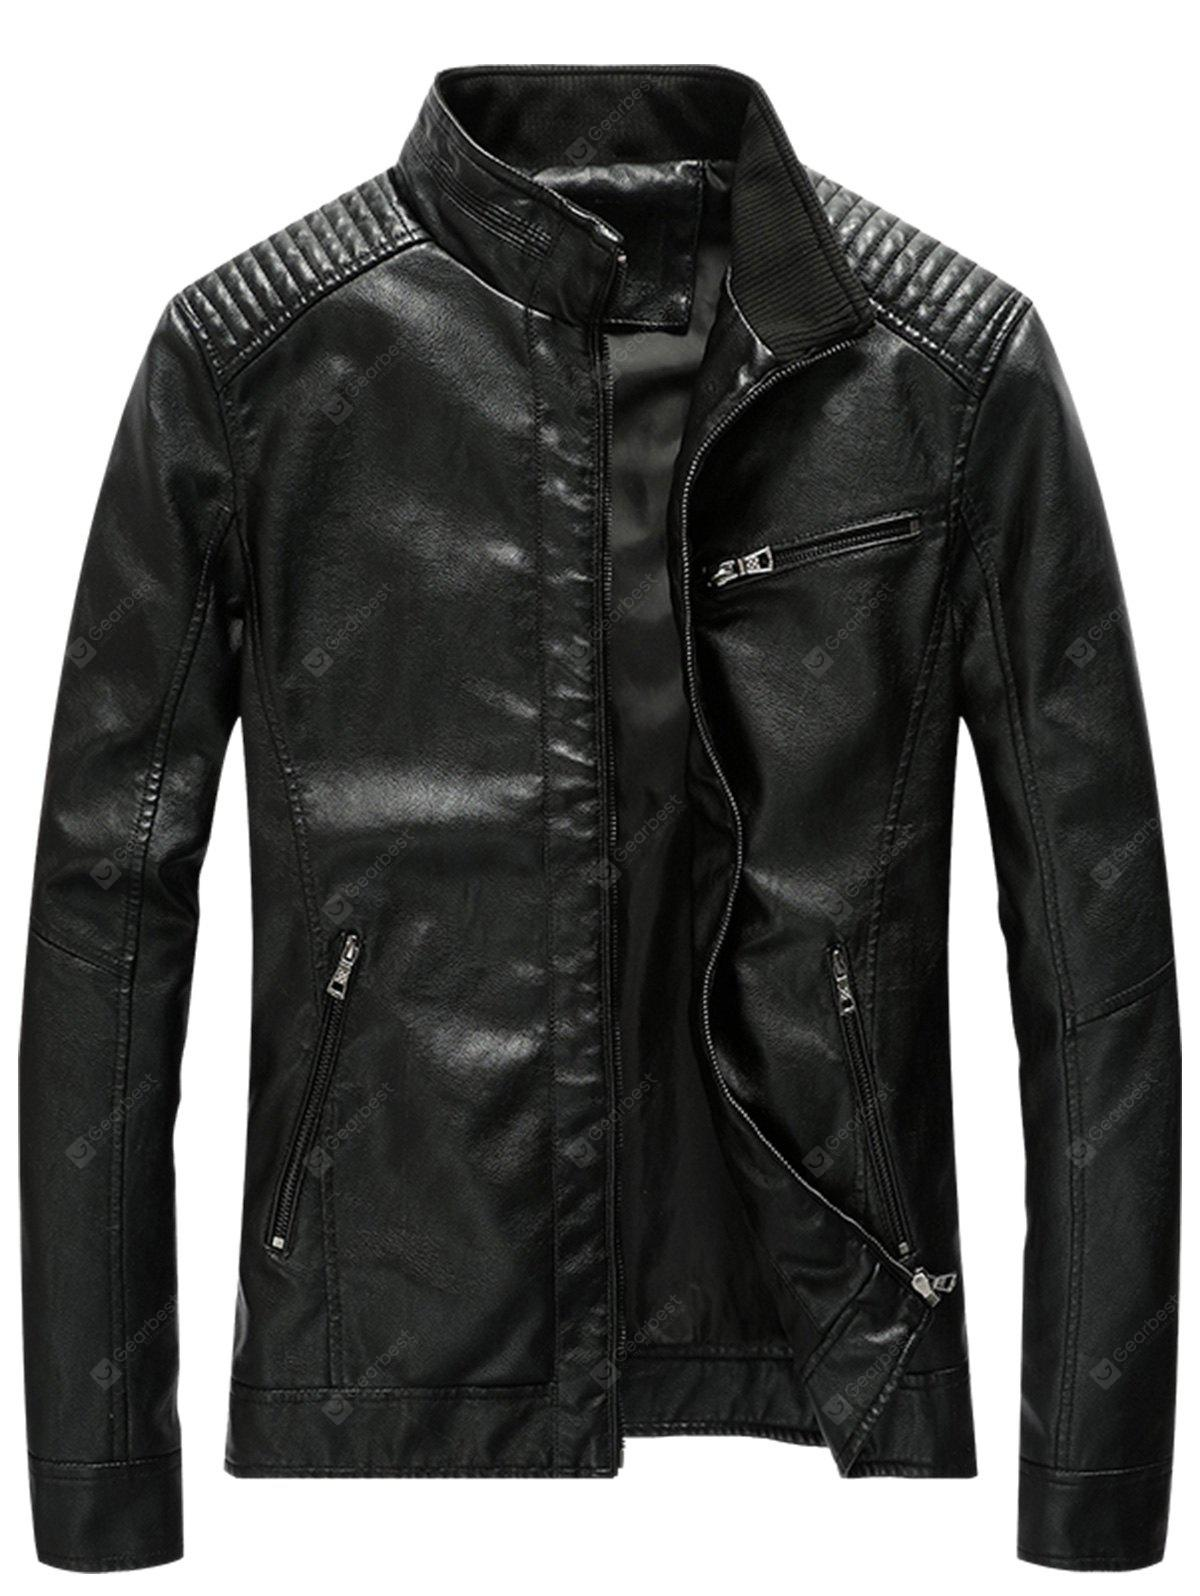 Stand Collar Pleat PU Leather Zip Up Jacket